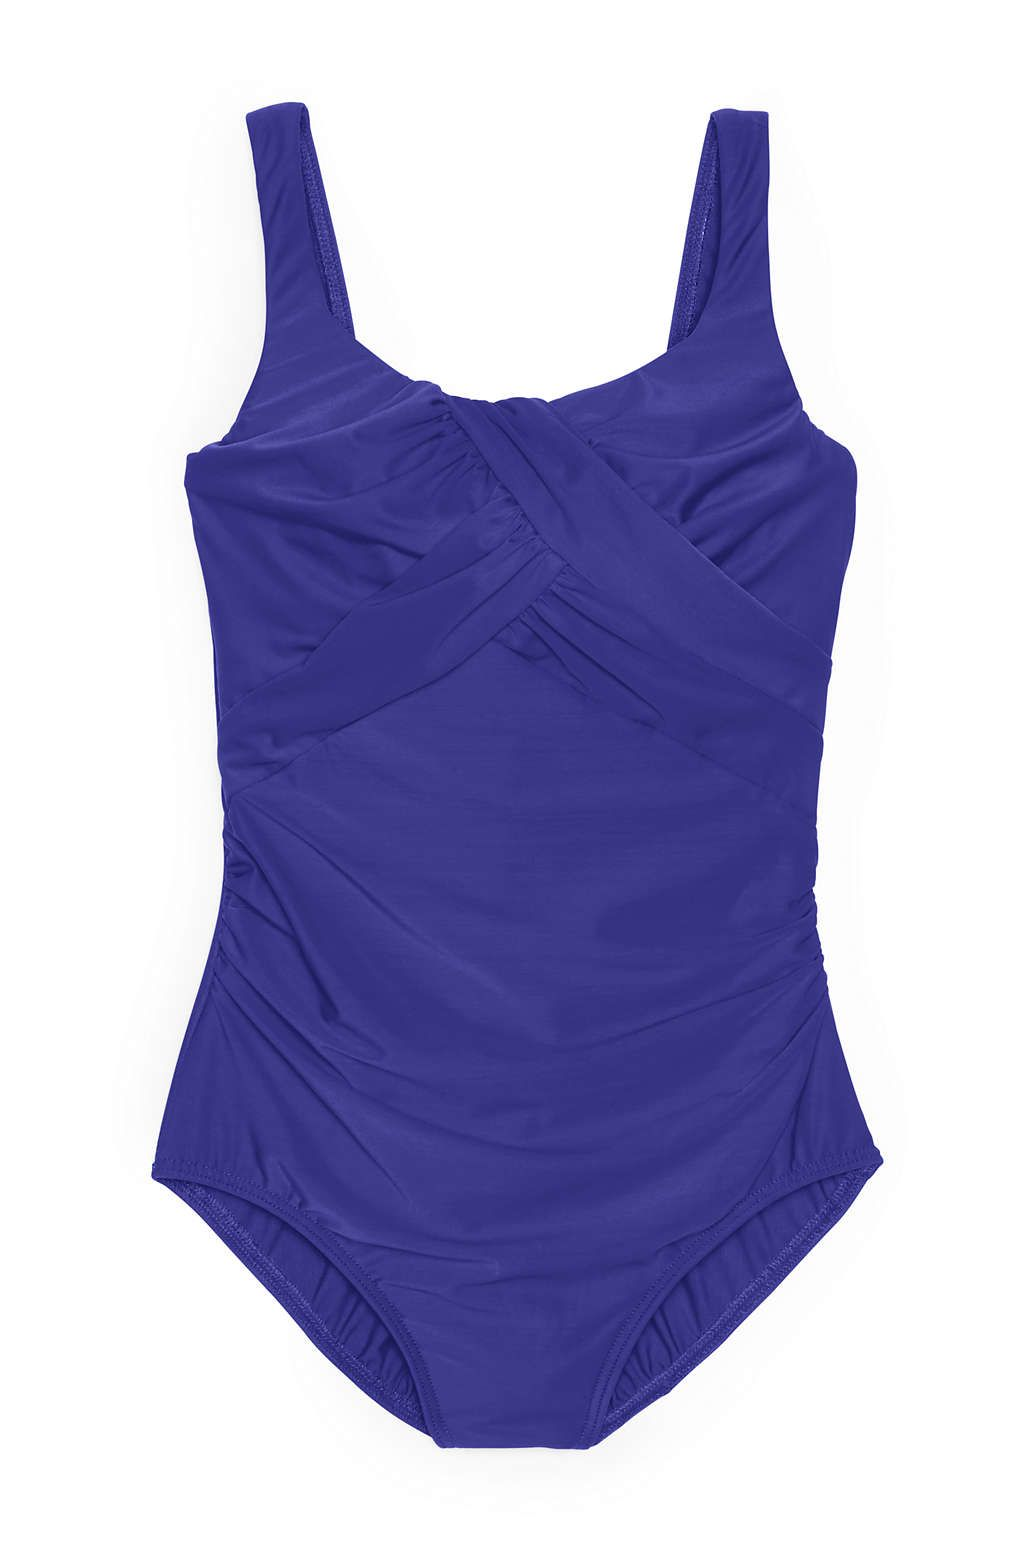 2ab0360a065 Women's Slender Carmela Underwire One Piece Swimsuit with Tummy Control  from Lands' End